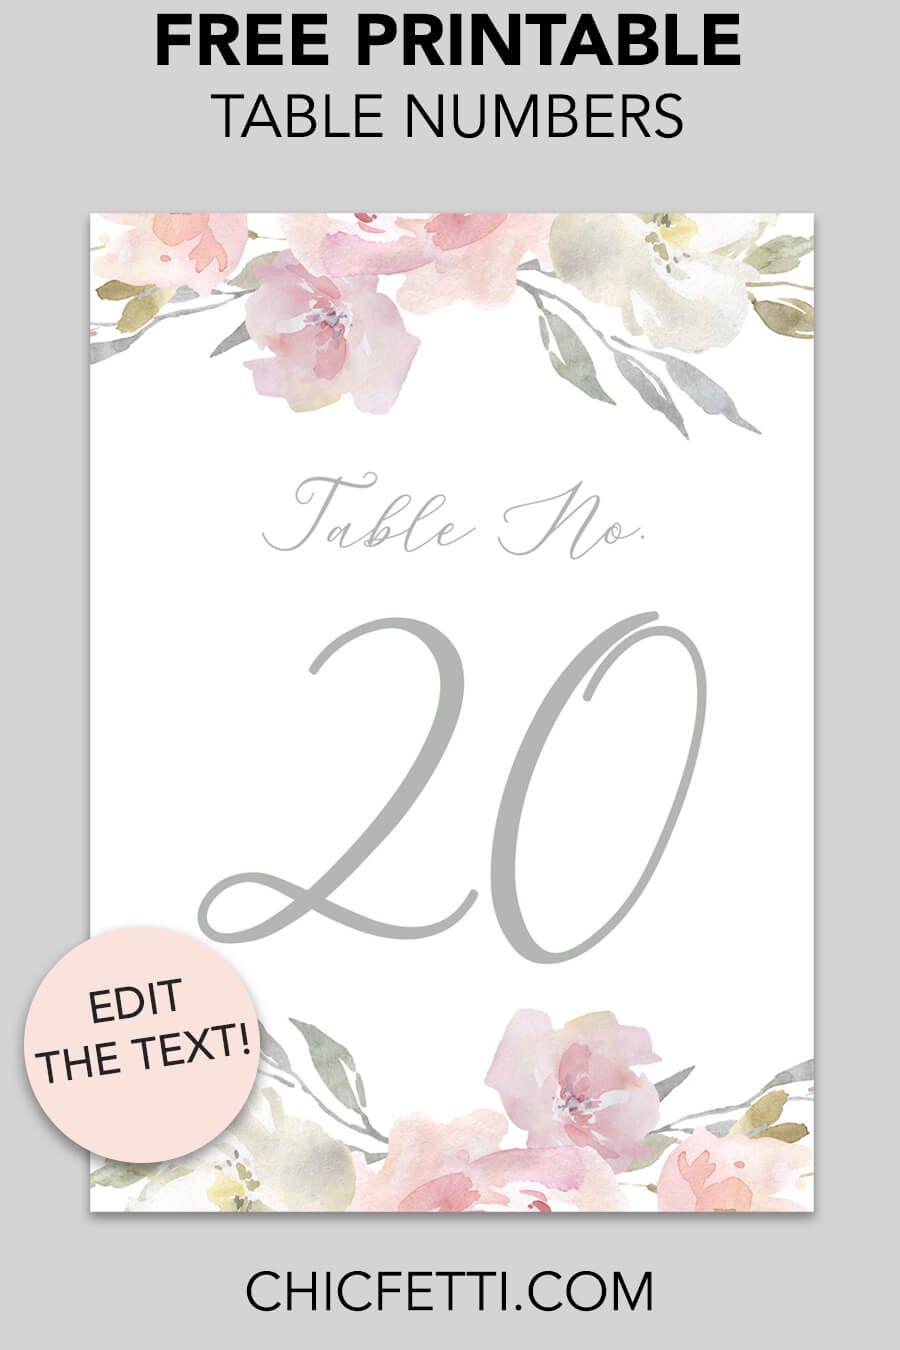 Printable Table Numbers Blush Floral Free Wedding Table Numbers Wedding Table Numbers Printable Printable Place Cards Wedding